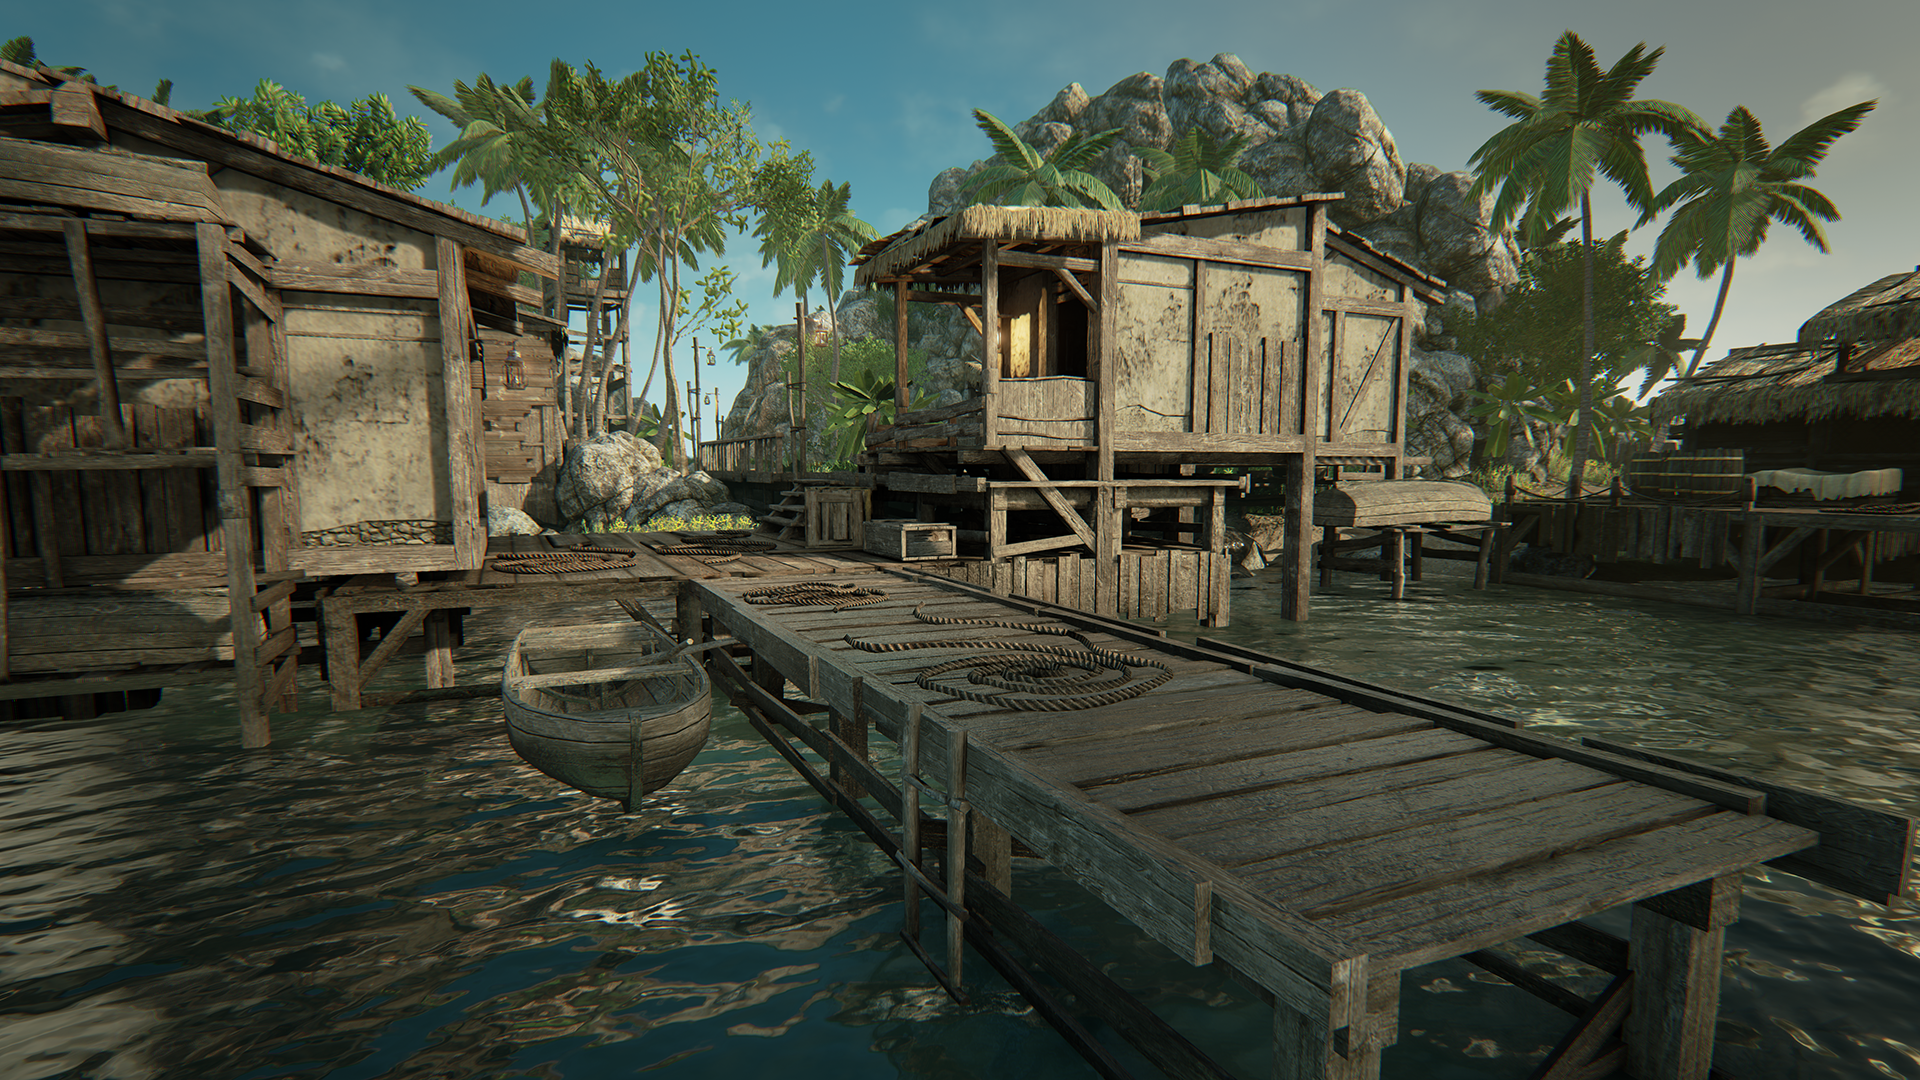 Pirates Island By Manufactura K4 In Environments Ue4